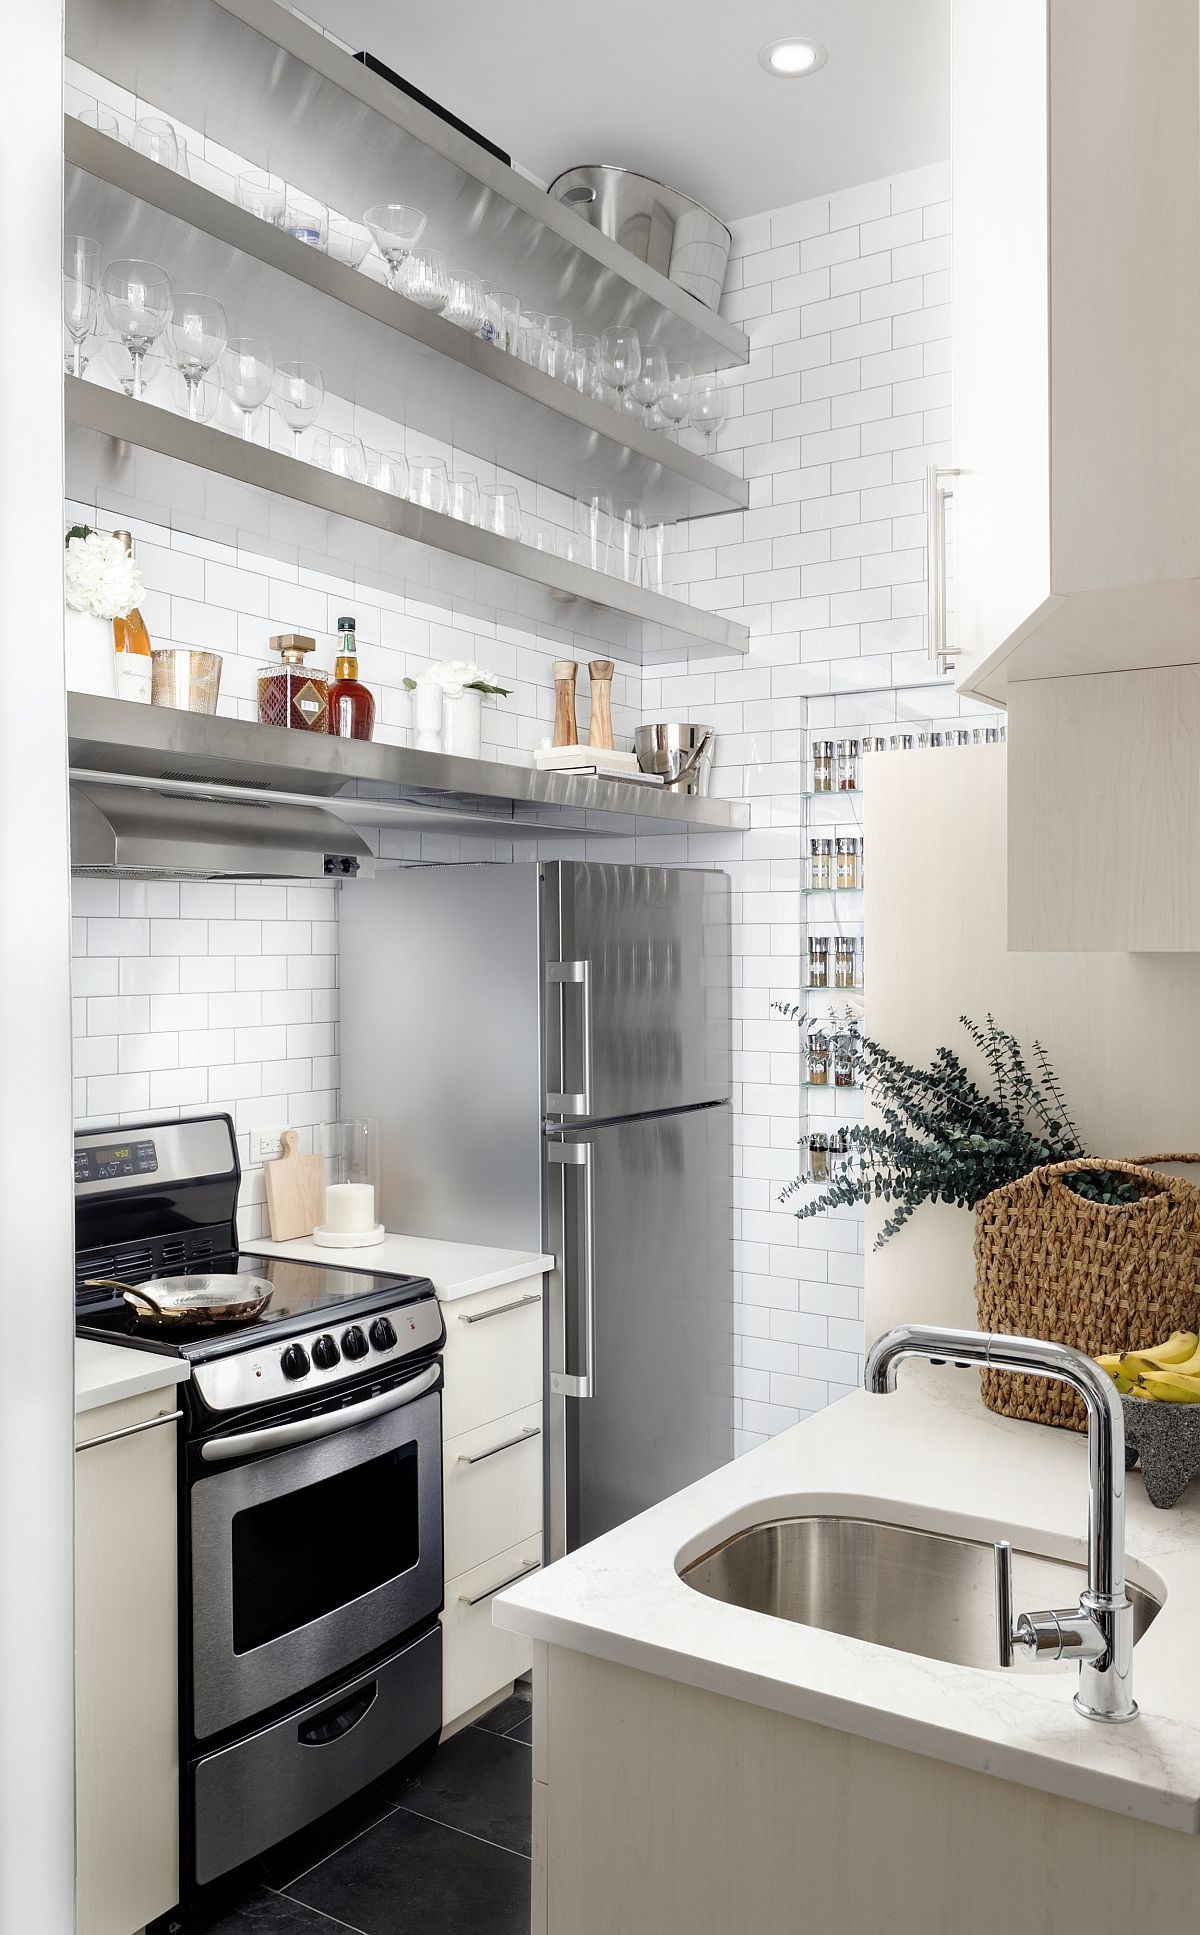 Stainless steel and white shape a fabulous and understated kitchen inside an apartment in Greenwich Village